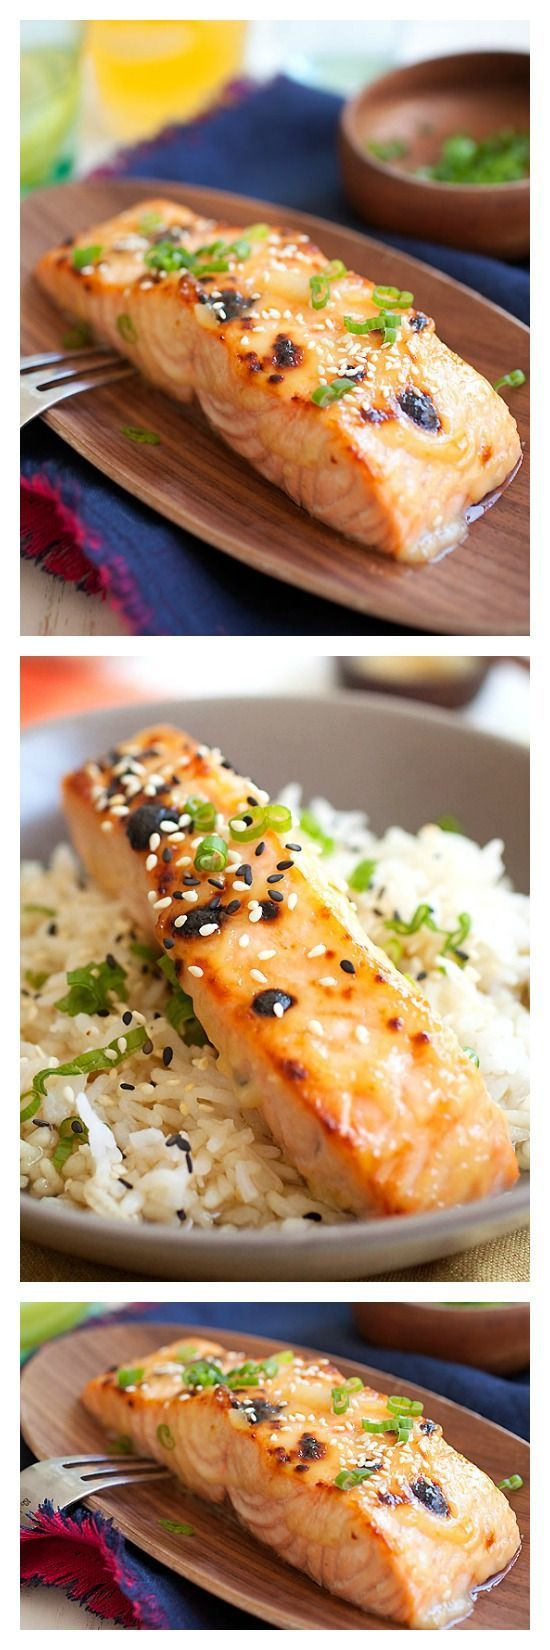 Miso-glazed broiled salmon - quick and easy recipe that takes only 15 minutes | rasamalaysia.com